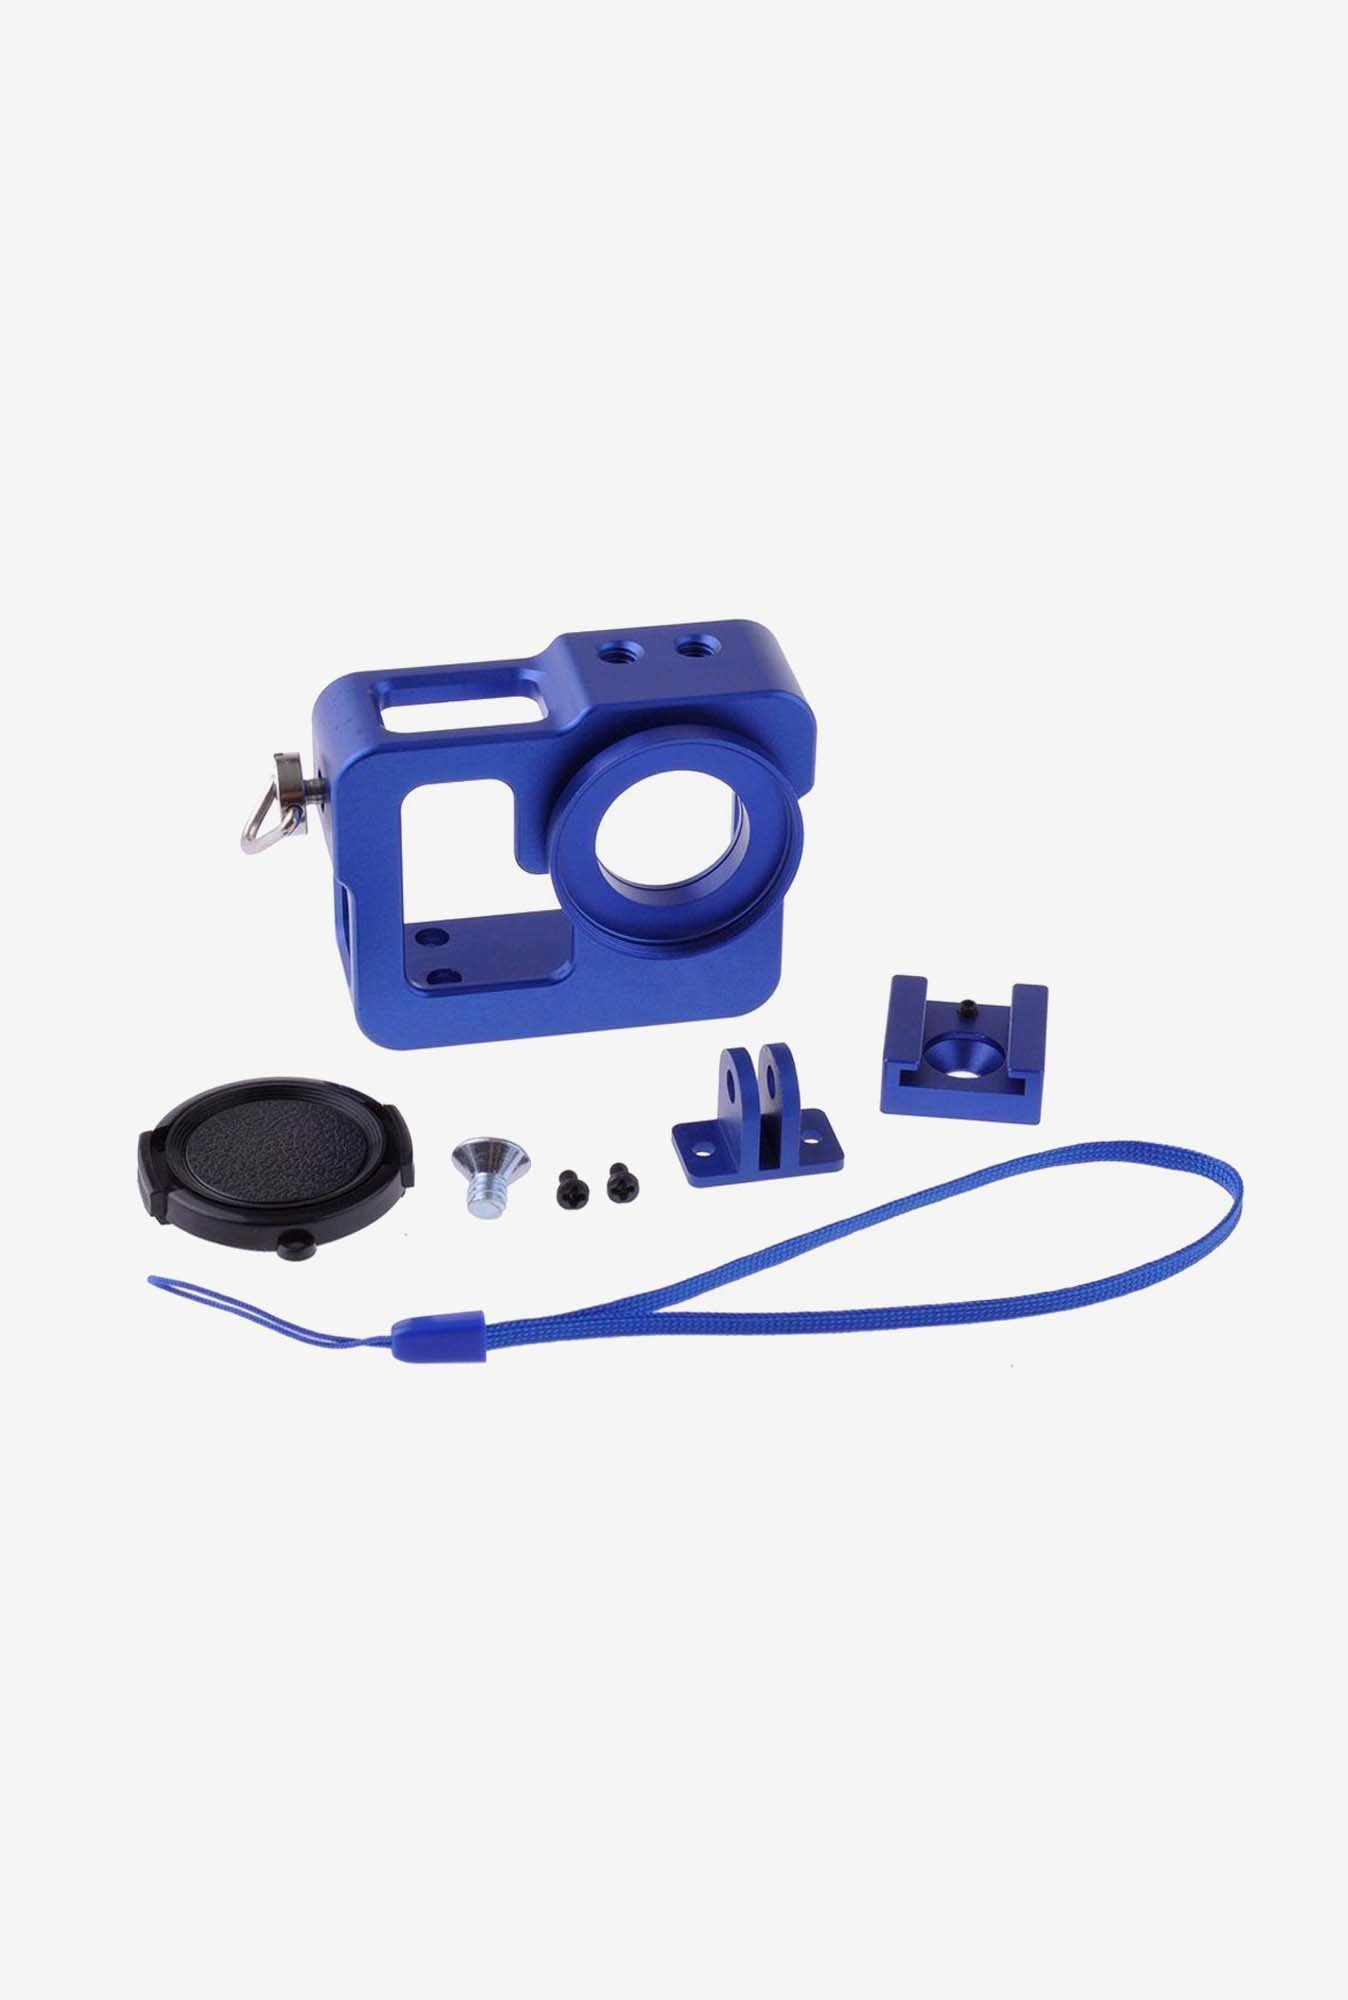 Neewer Border Shell with 37mm Lens Cap for Gopro Hero (Blue)